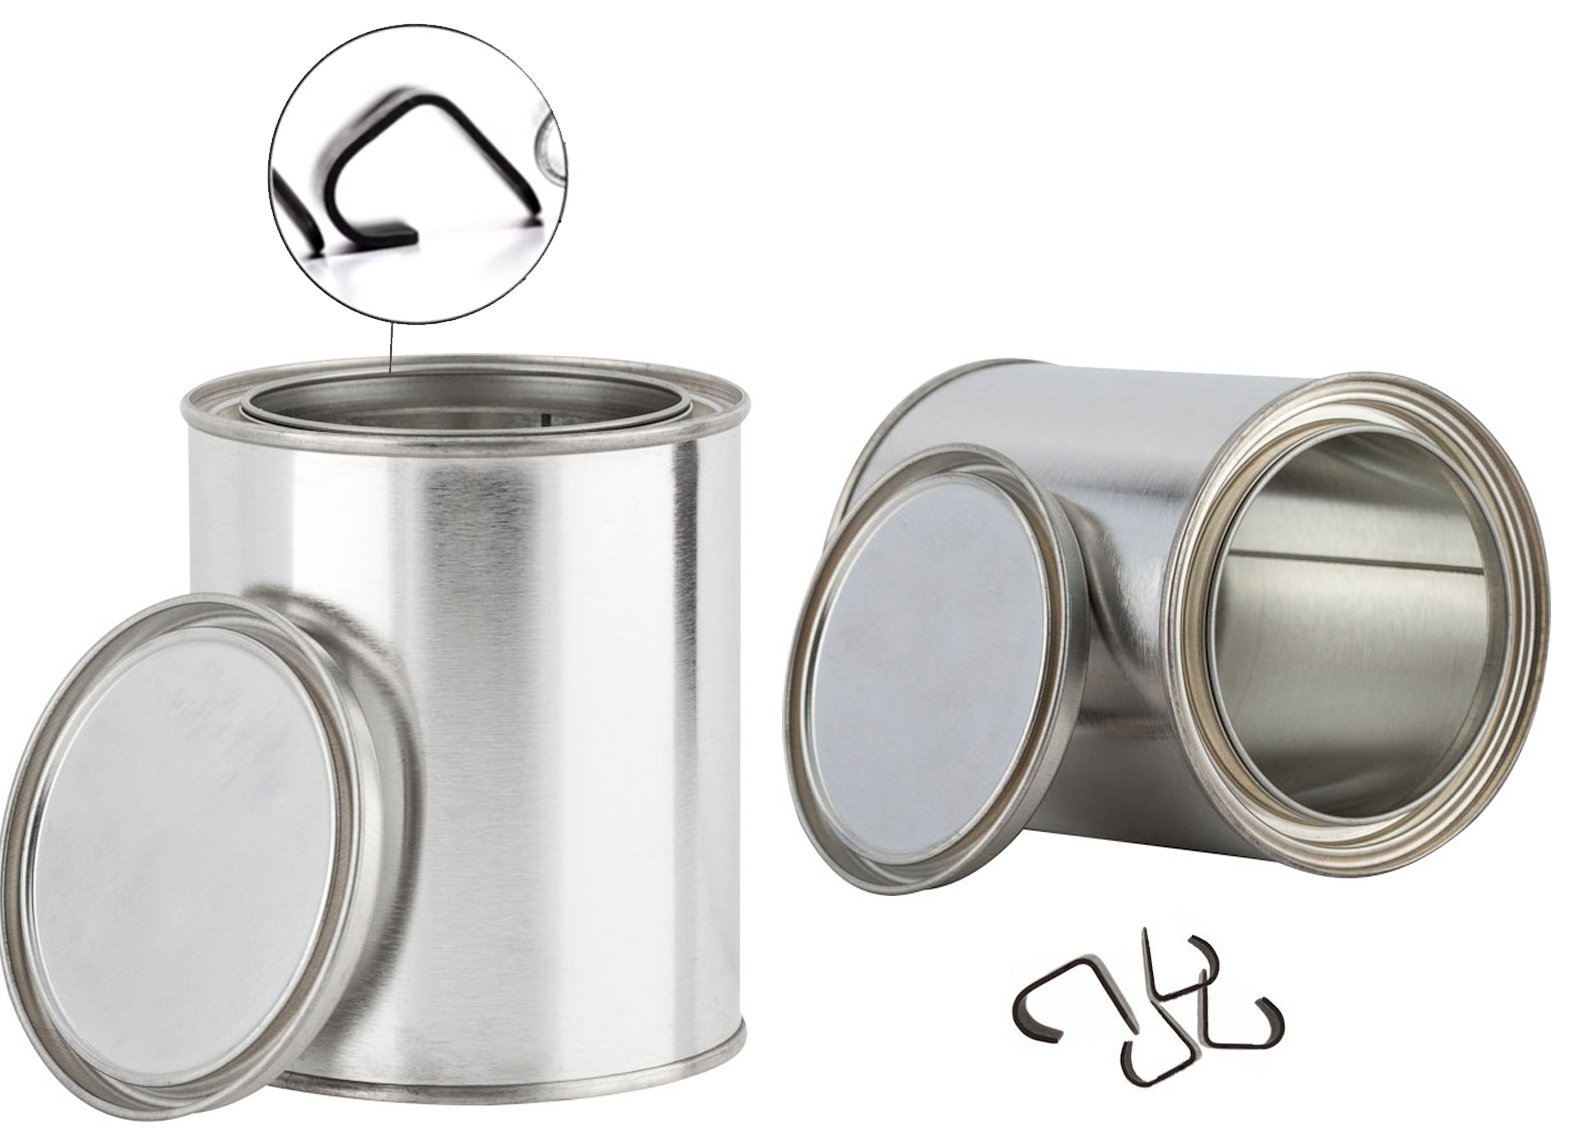 Sized Quart Paint Can Clips with Lids (2 Pack) Empty Metal Storage Empty Cans with Securing Tops Container Set Unlined (Quart)